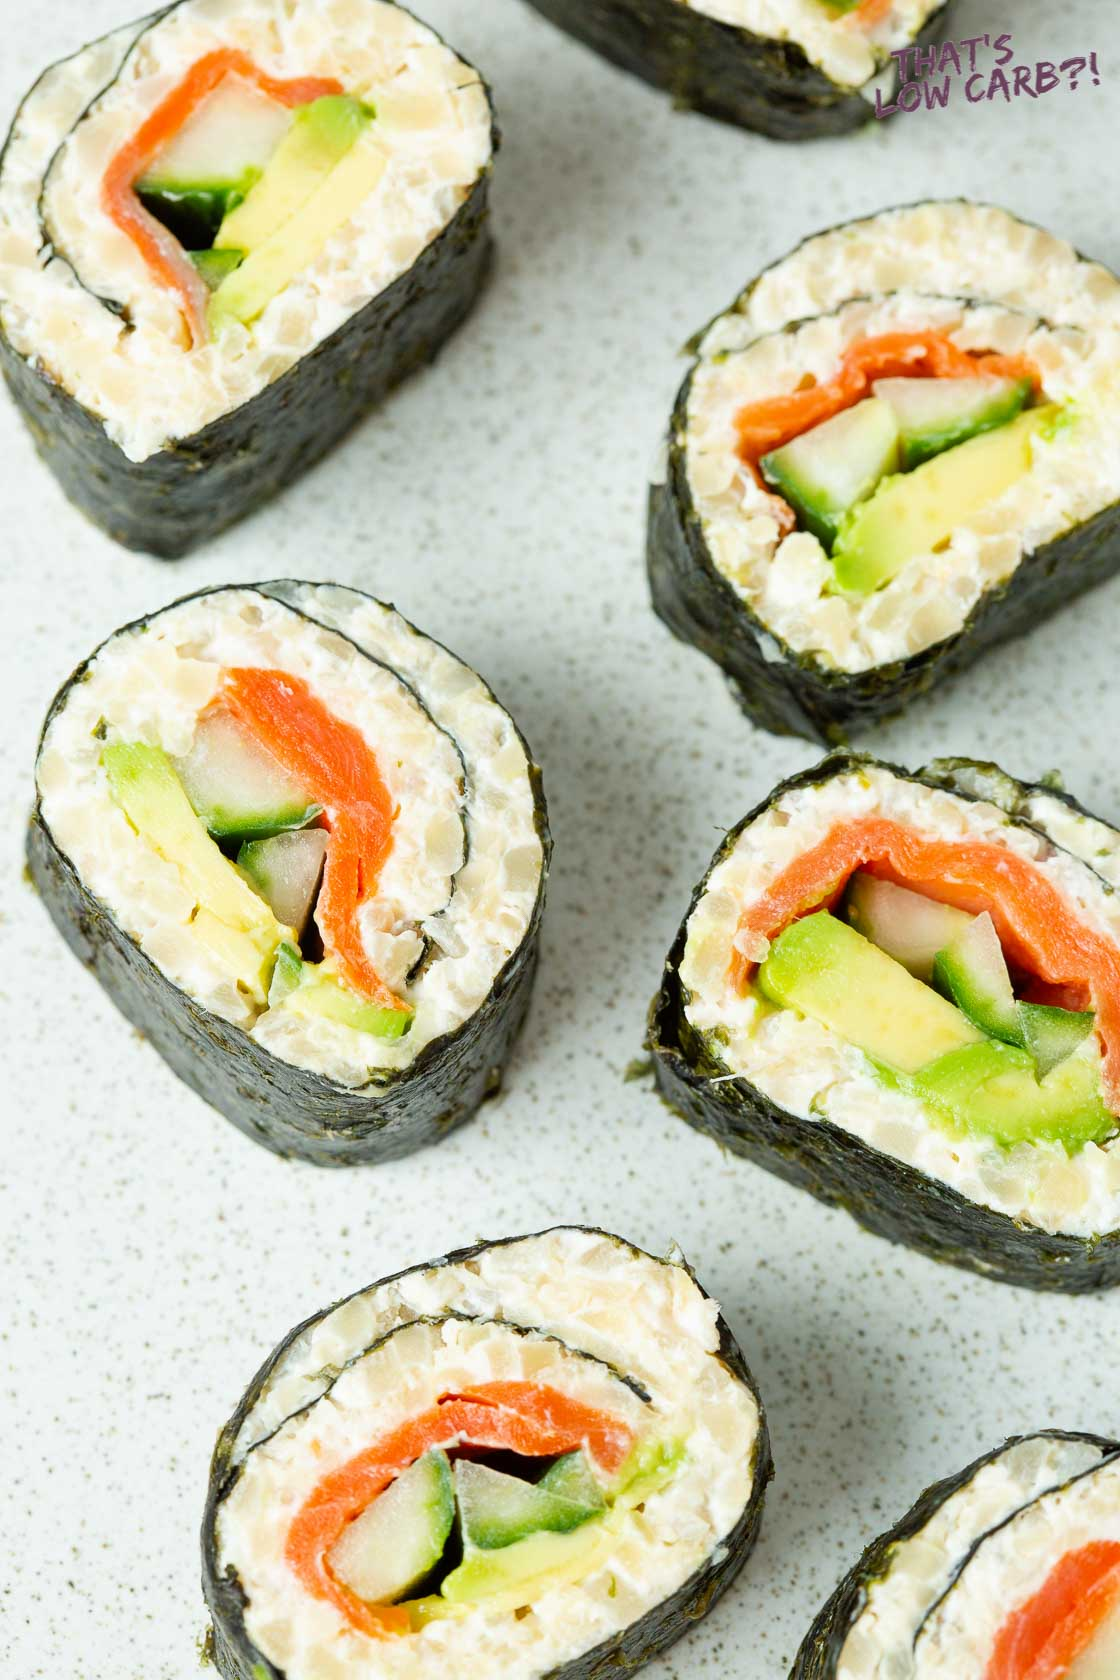 Smoked Salmon sushi rolls with avocado and cucumber